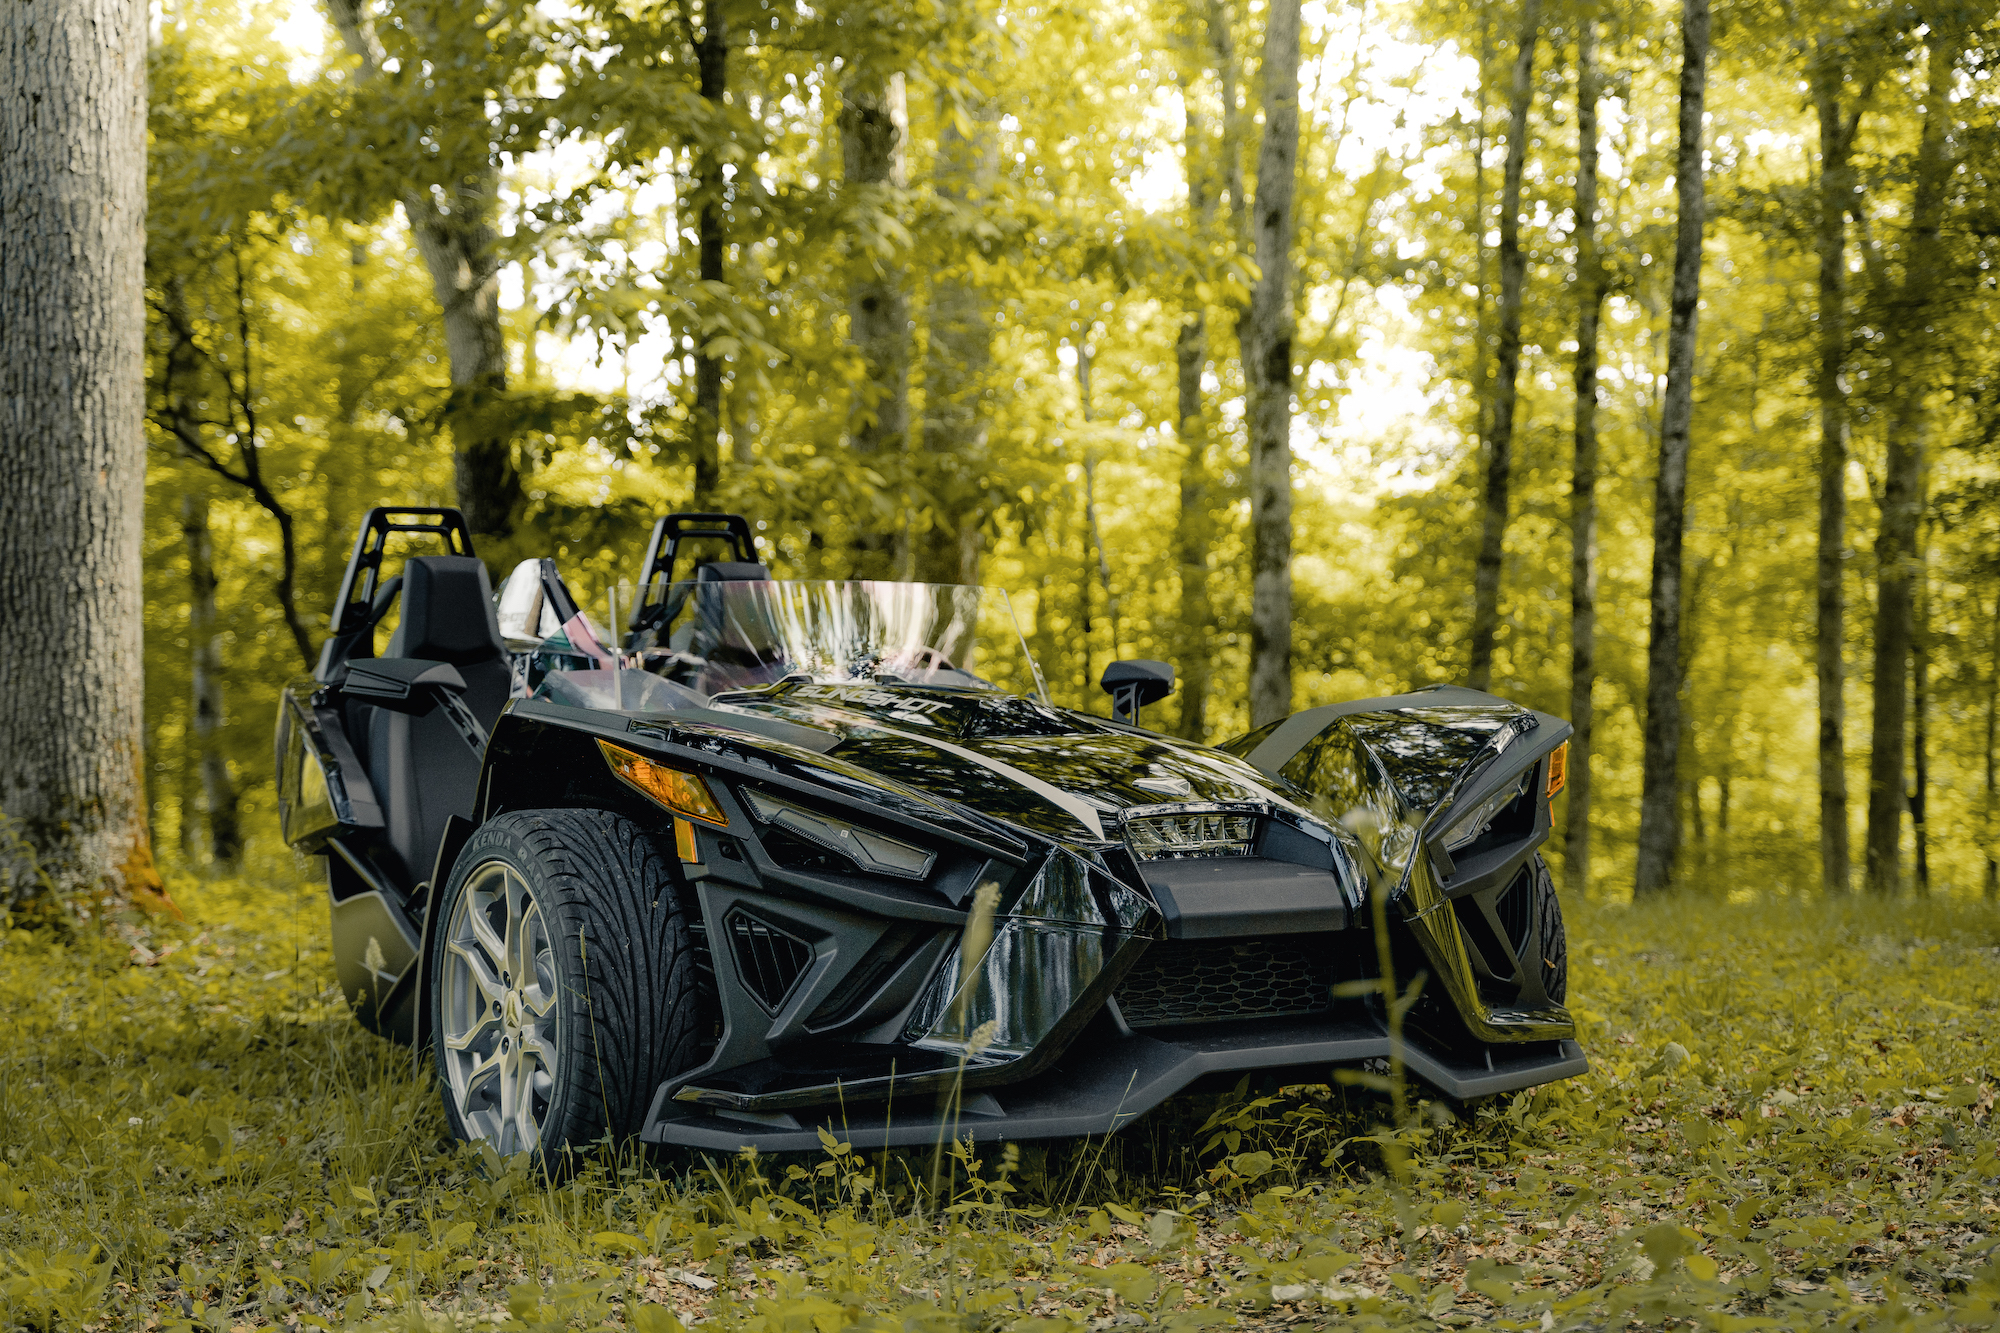 front of Polaris Slingshot - Polaris Slingshots are available as rentals at the Mountain Mile Mall at Mountain Mile Adventures in Pigeon Forge, Tennessee